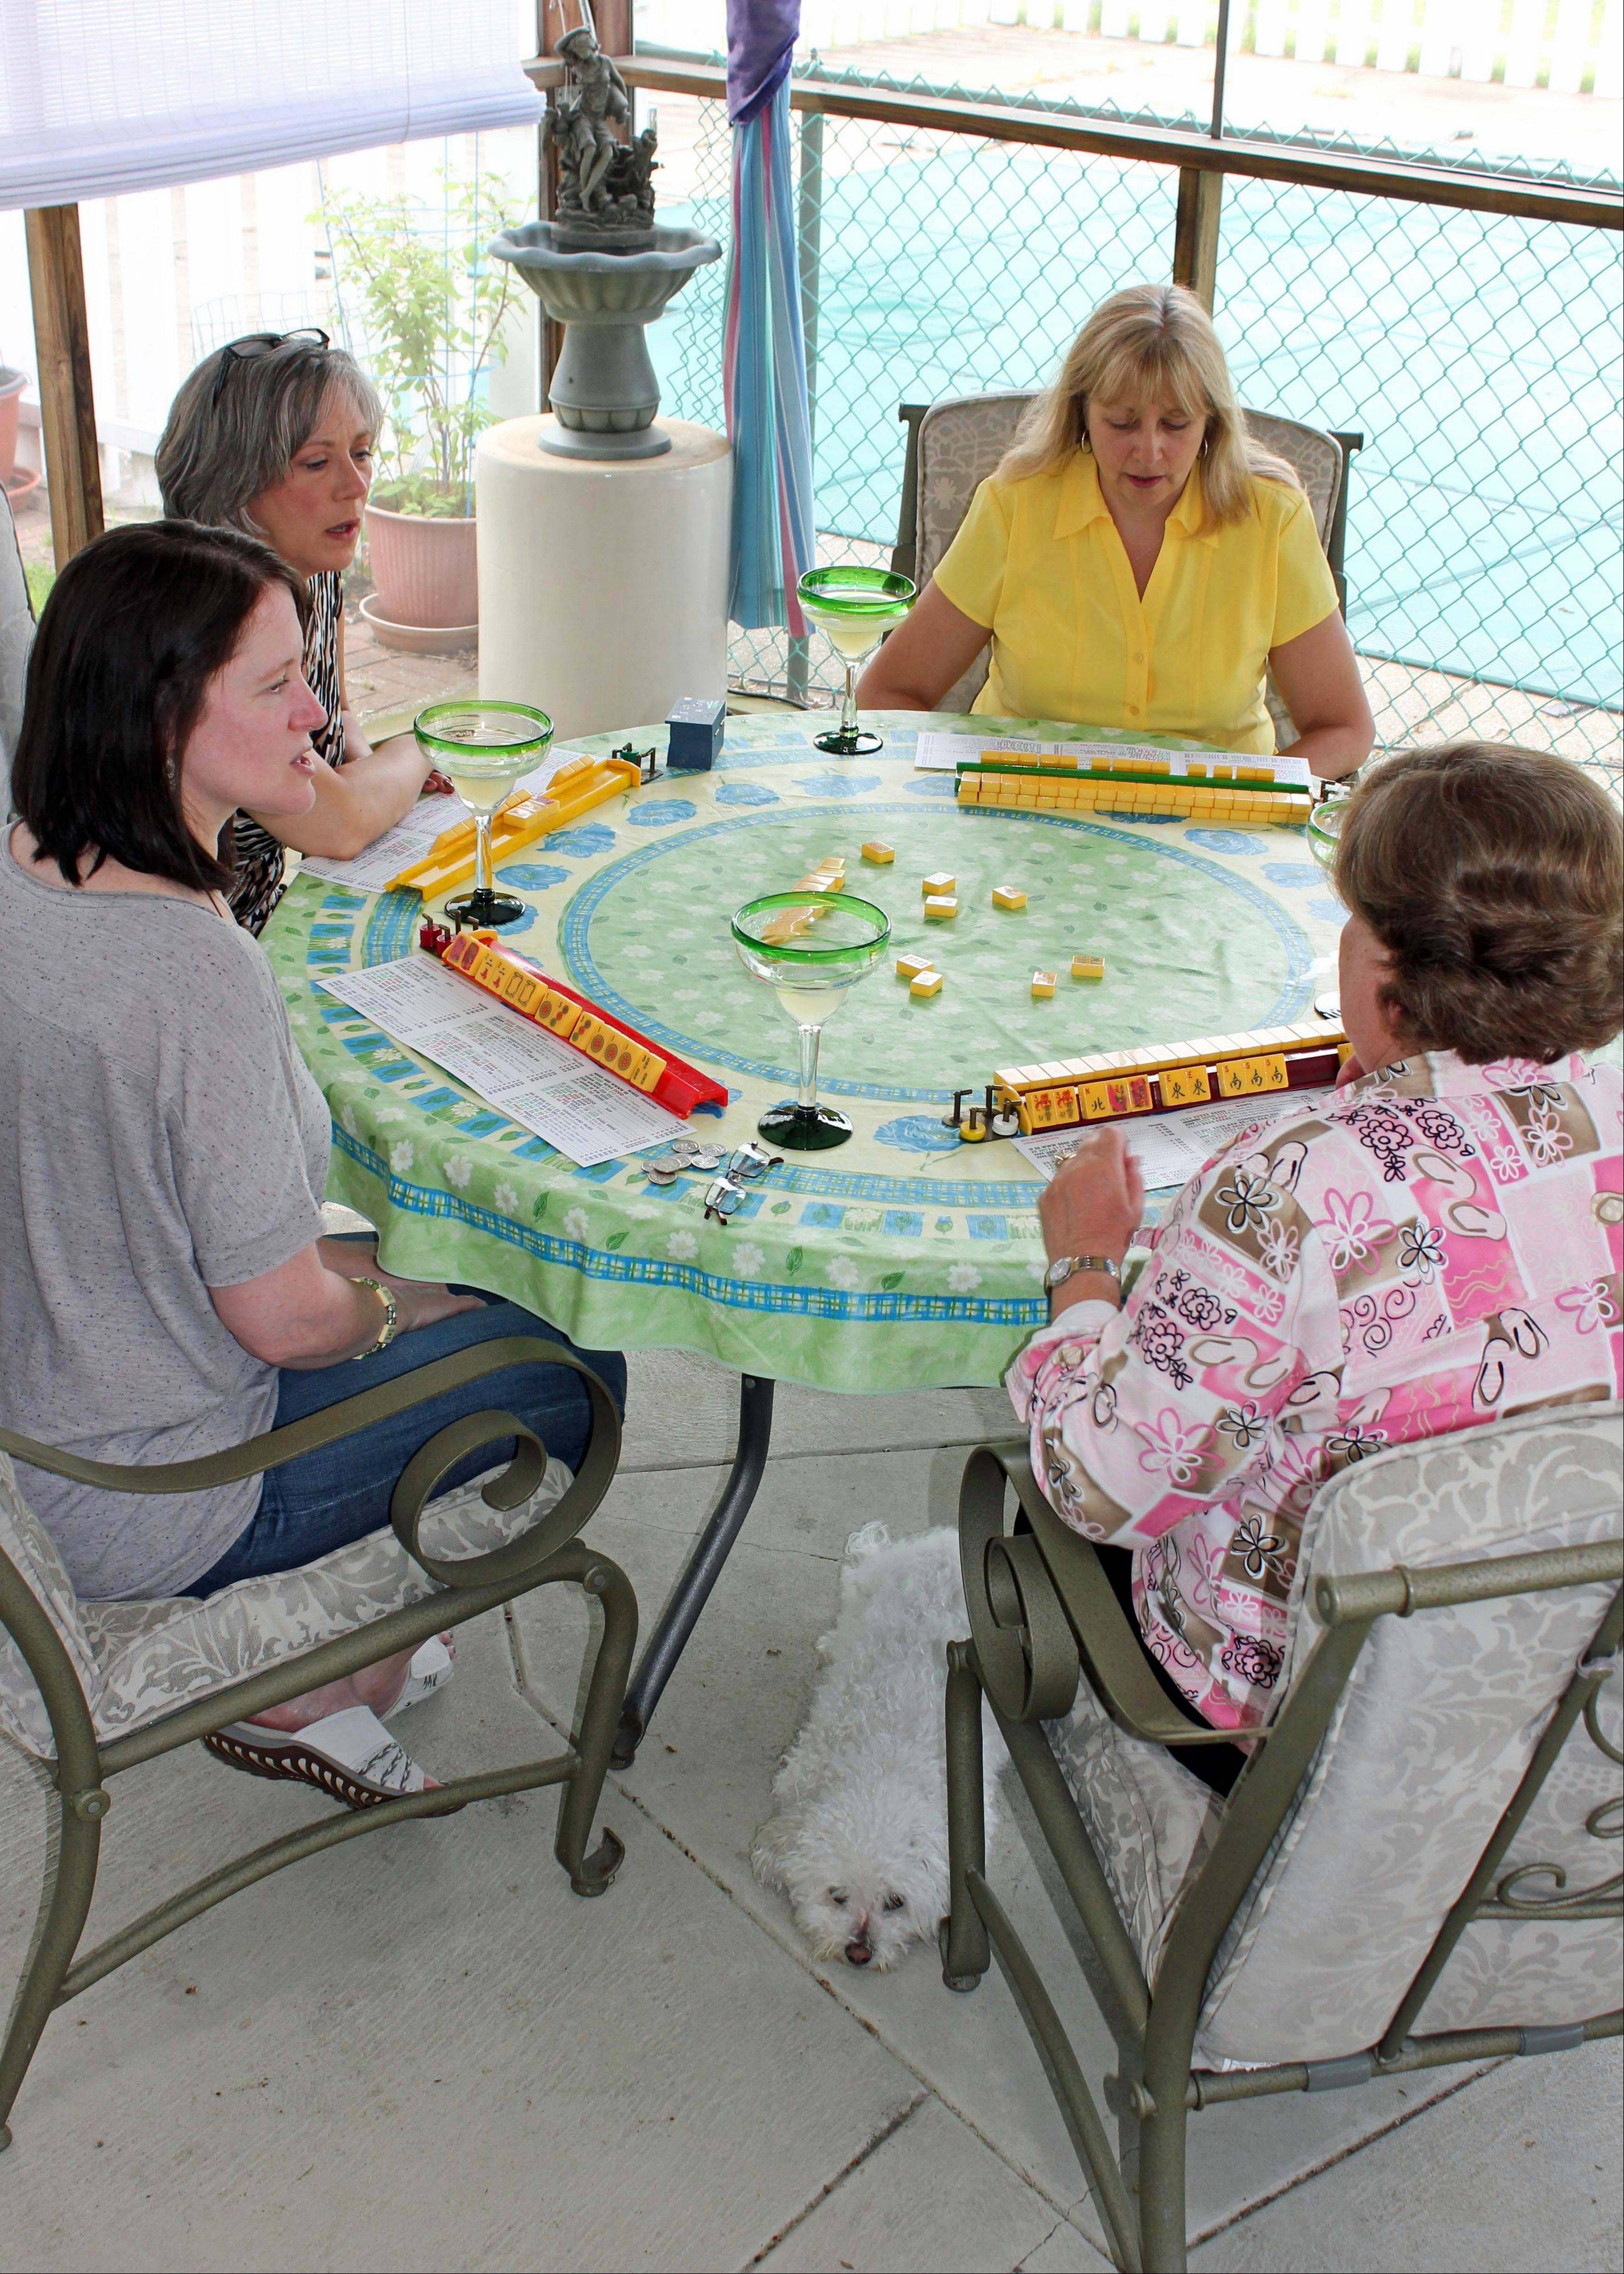 Debbie Schwartz, left, Marcy Imperi, Benita Munger and Judy Palladino play mahjong during a game night gathering in Mayfield Village, Ohio.